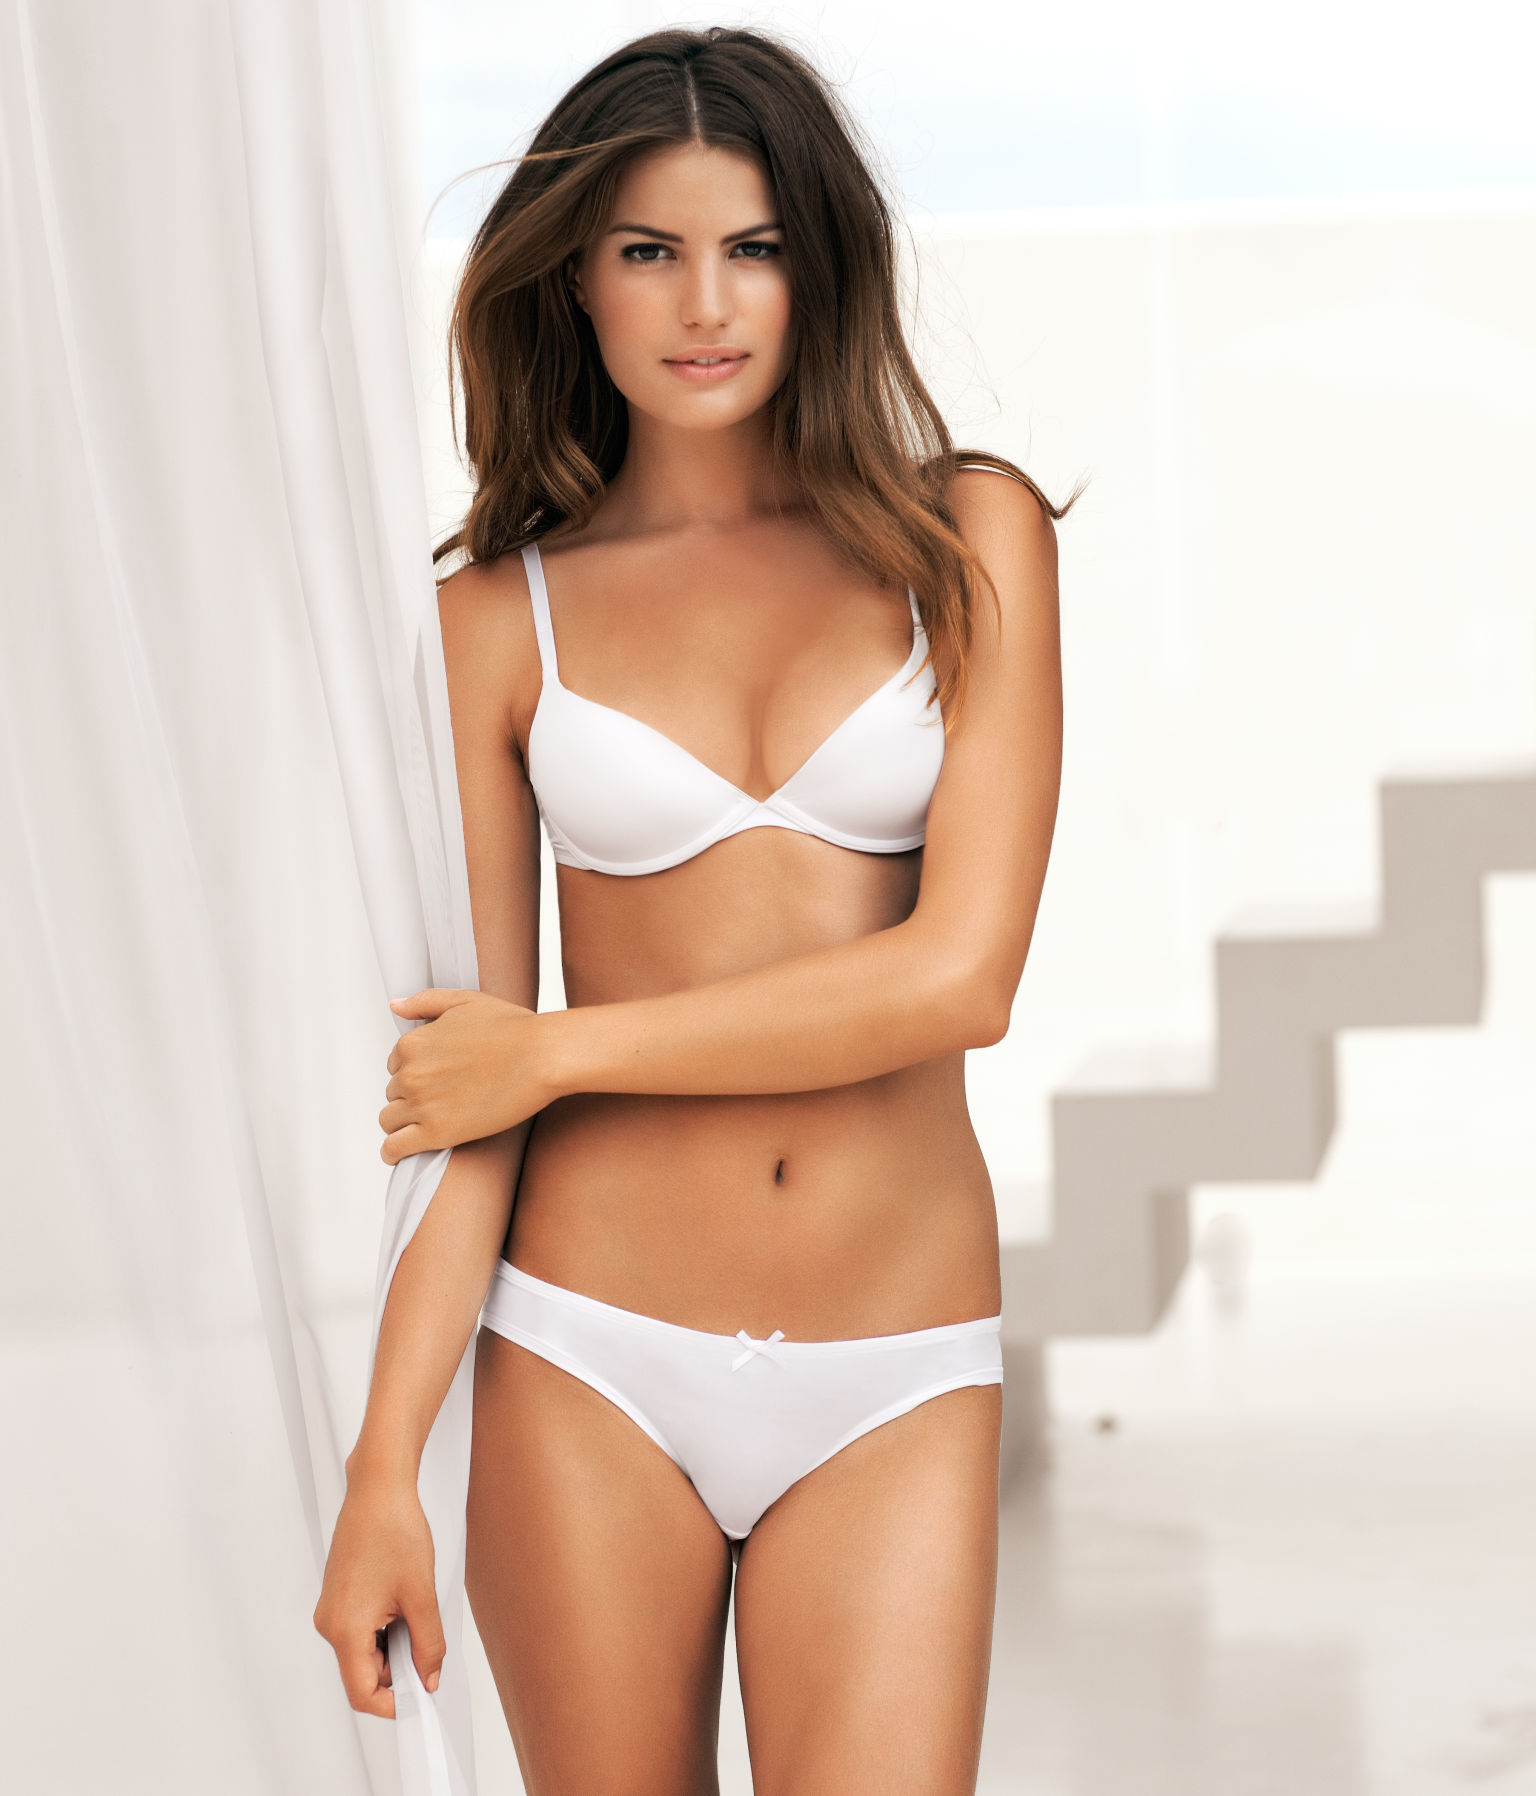 Cameron Russell photo 124 of 376 pics, wallpaper - photo ... Cameron Diaz Md